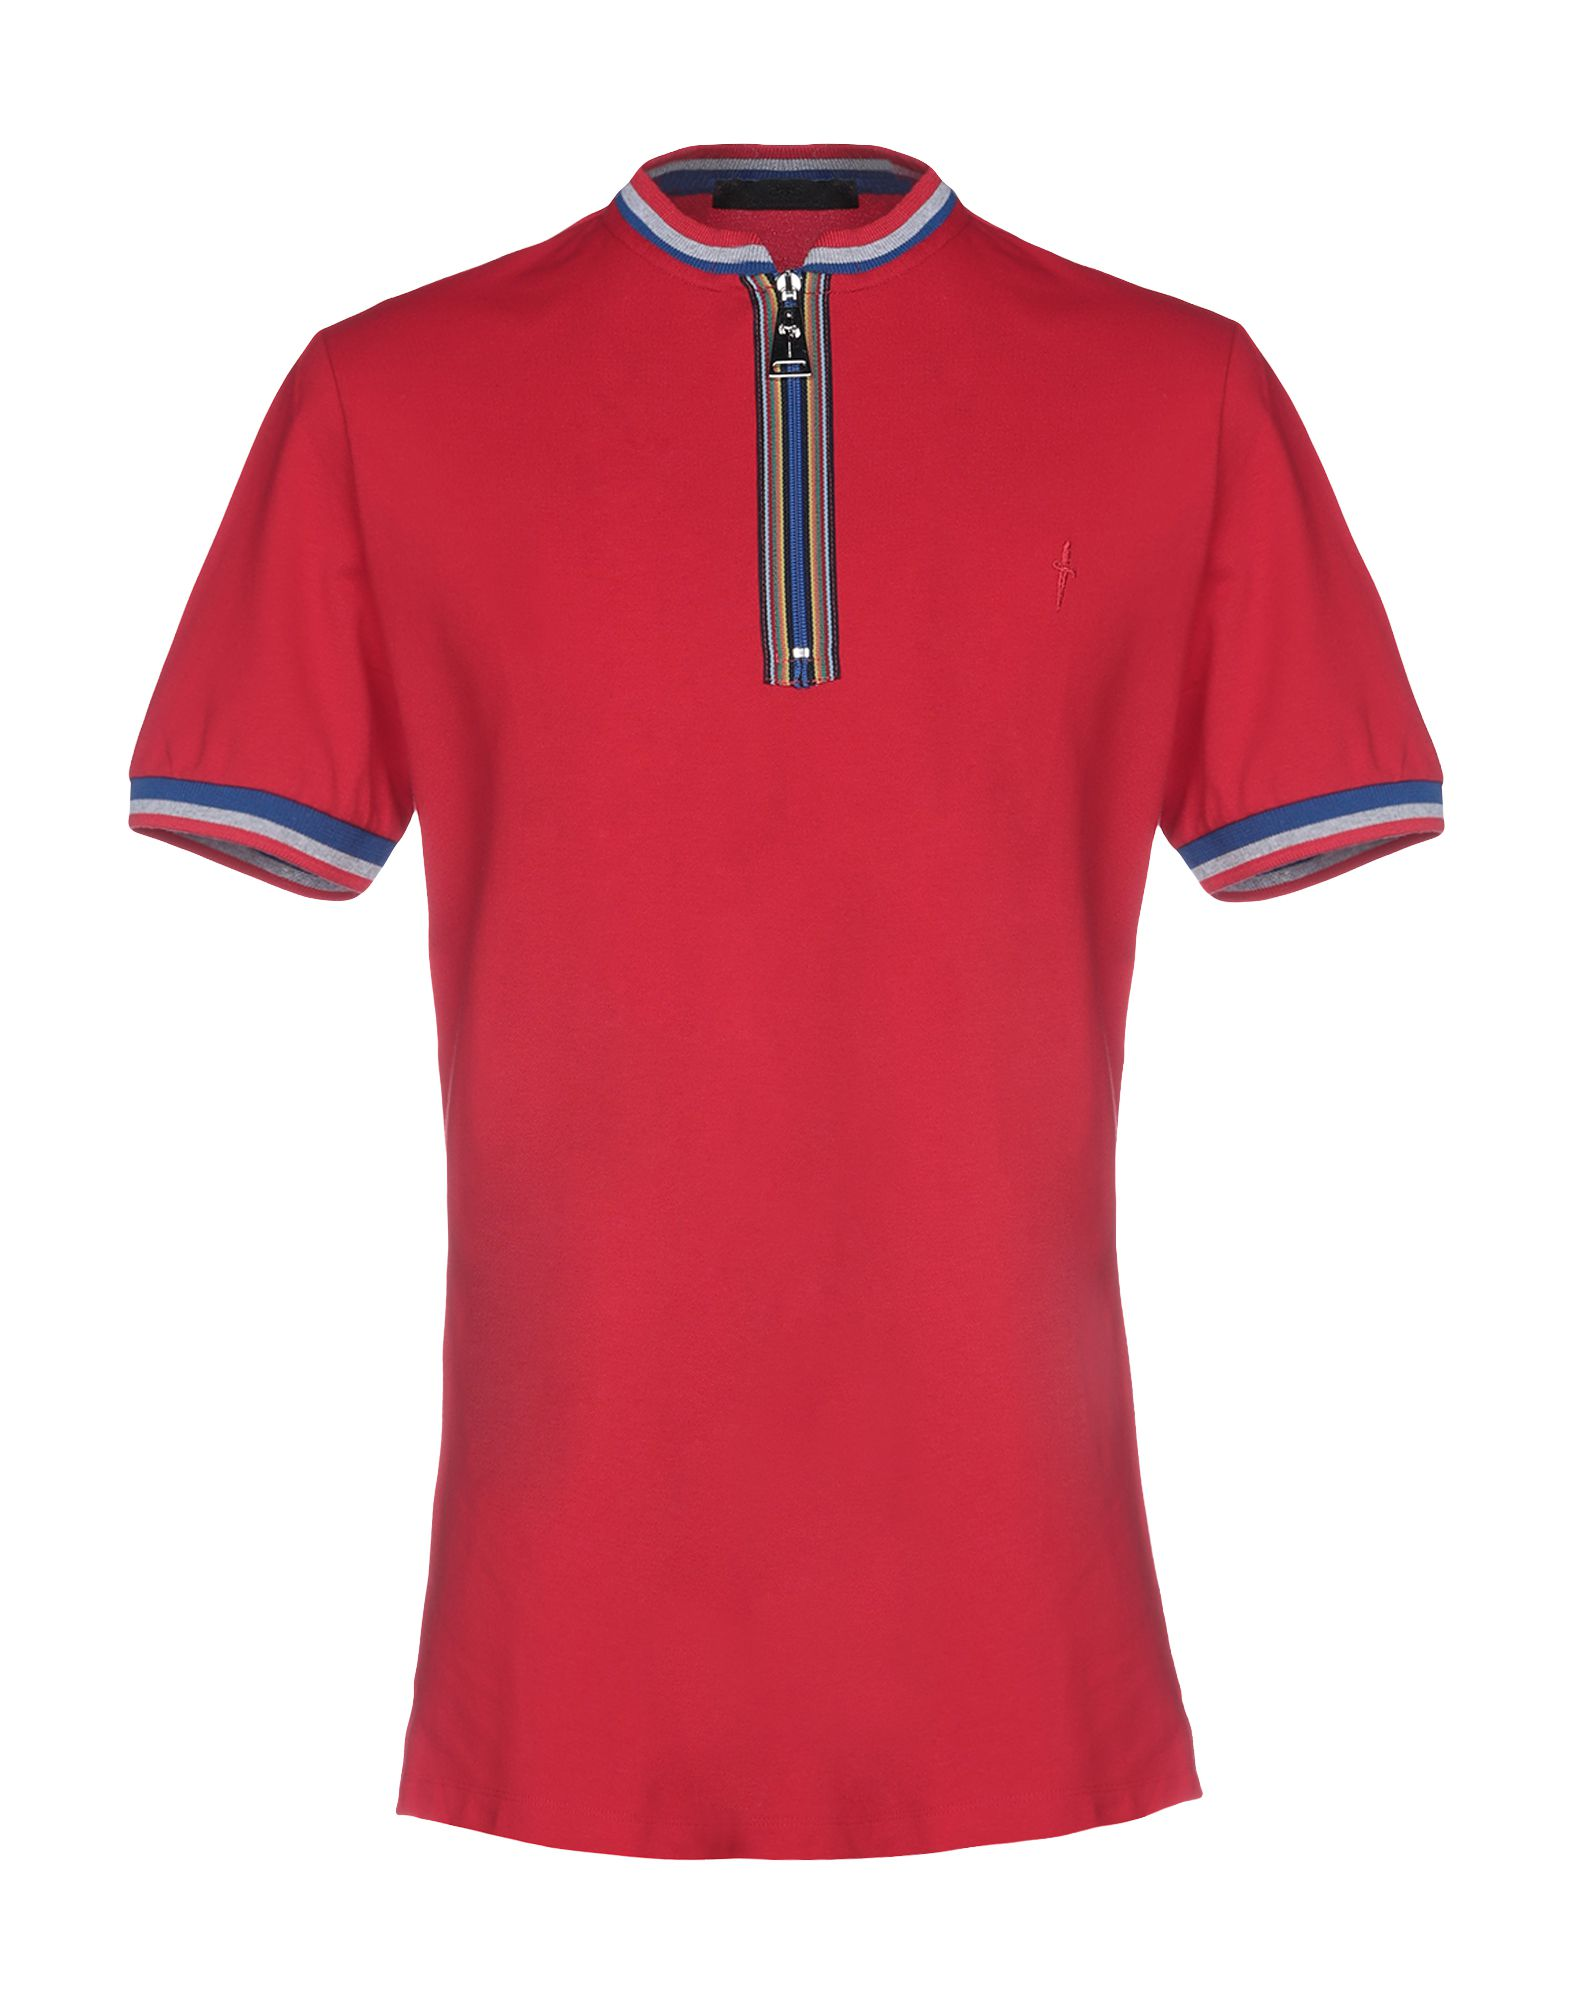 CESARE PACIOTTI 4US T-Shirts in Red